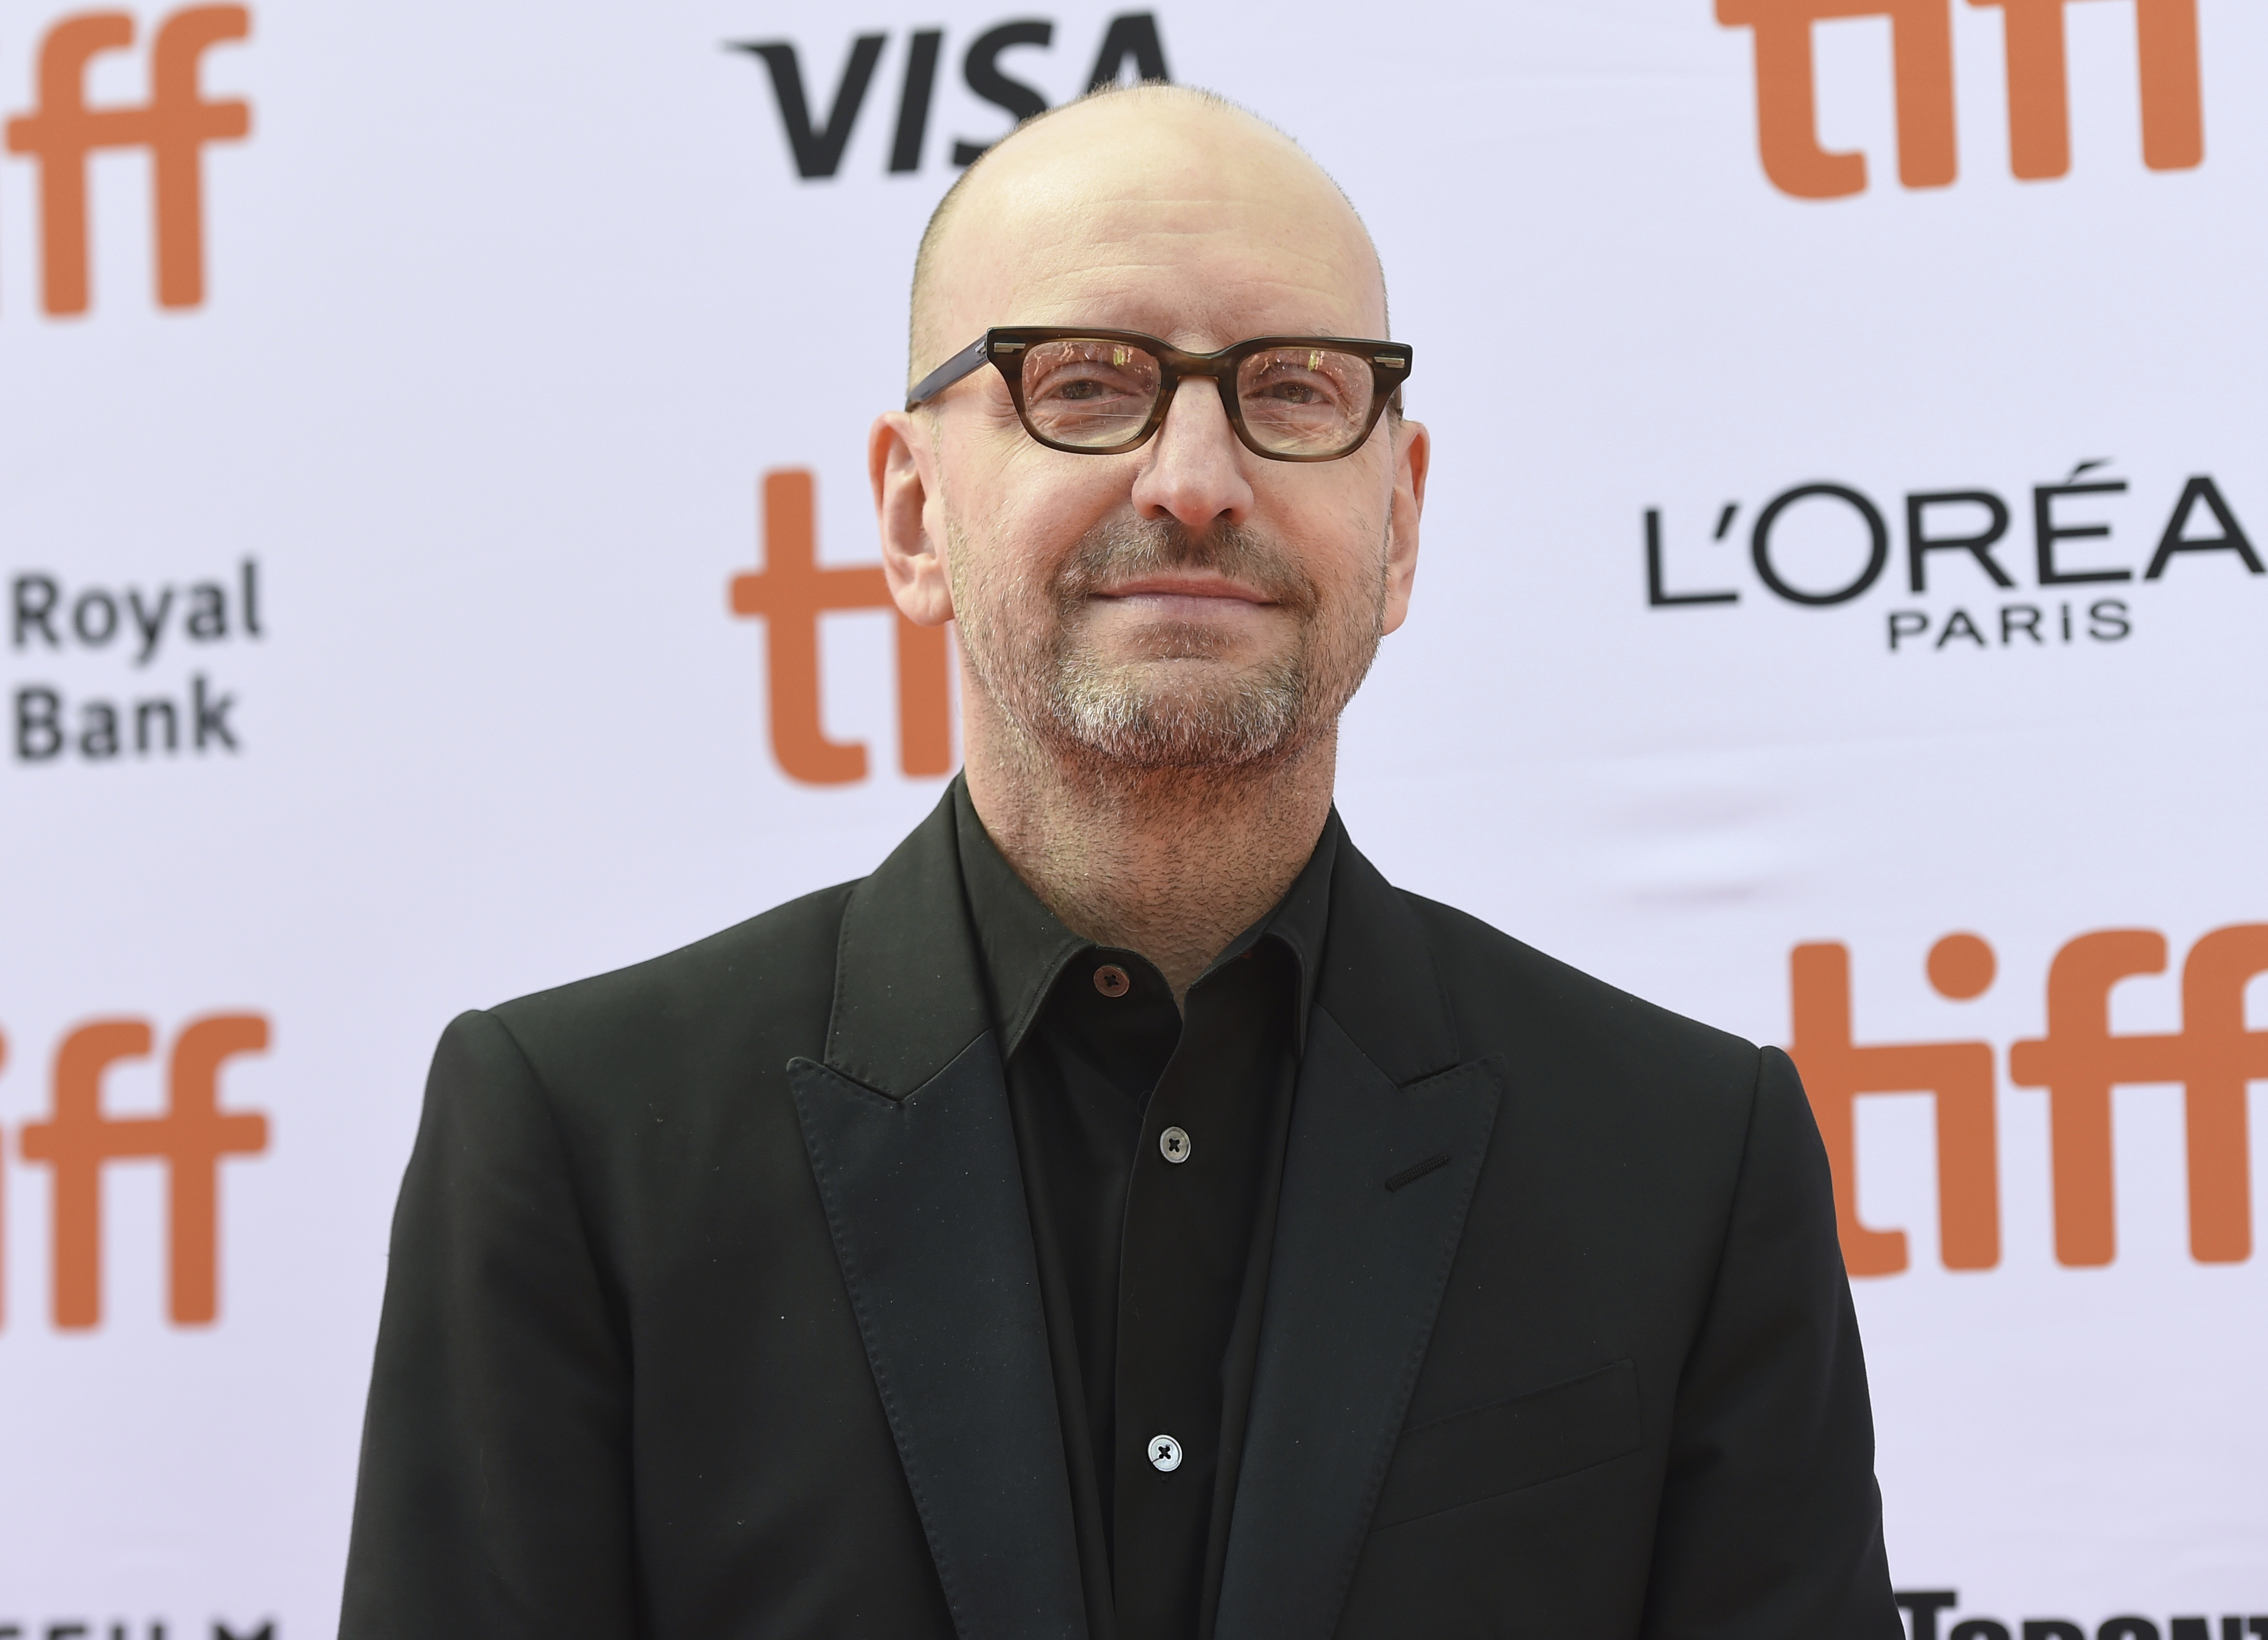 Steven Soderbergh Says Safety Measures Will Make Up 15-20 Percent of Budgets